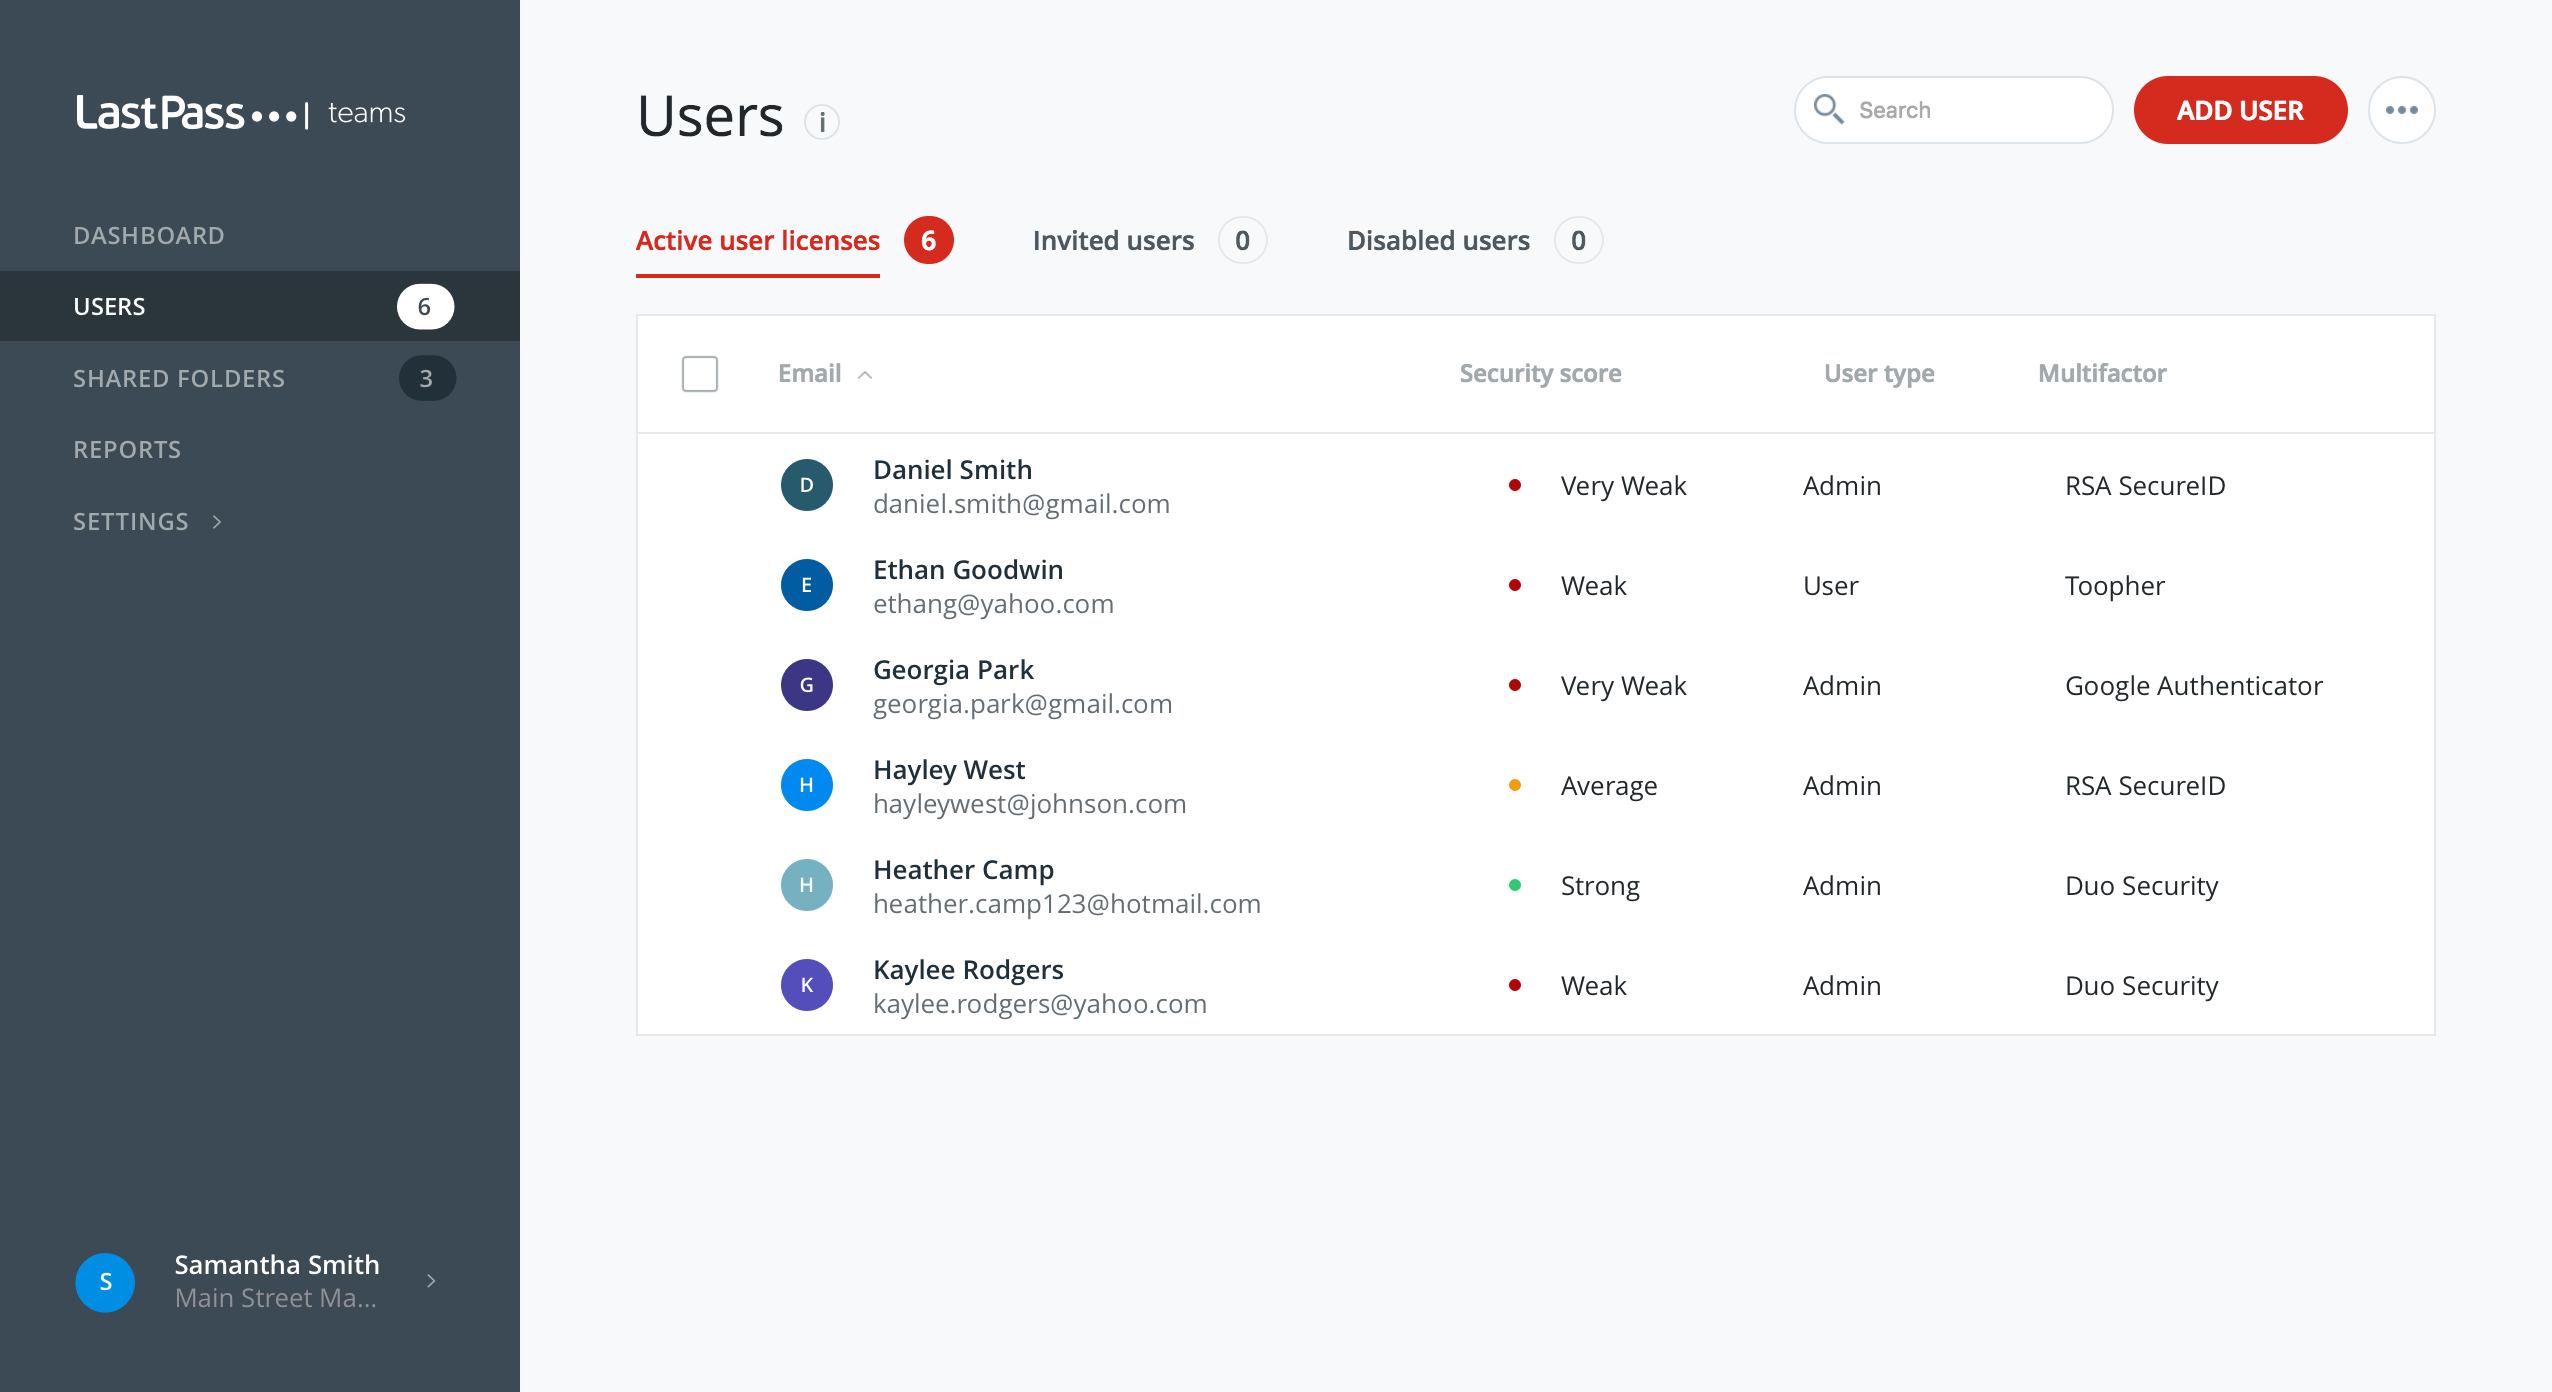 LastPass - Active user licenses